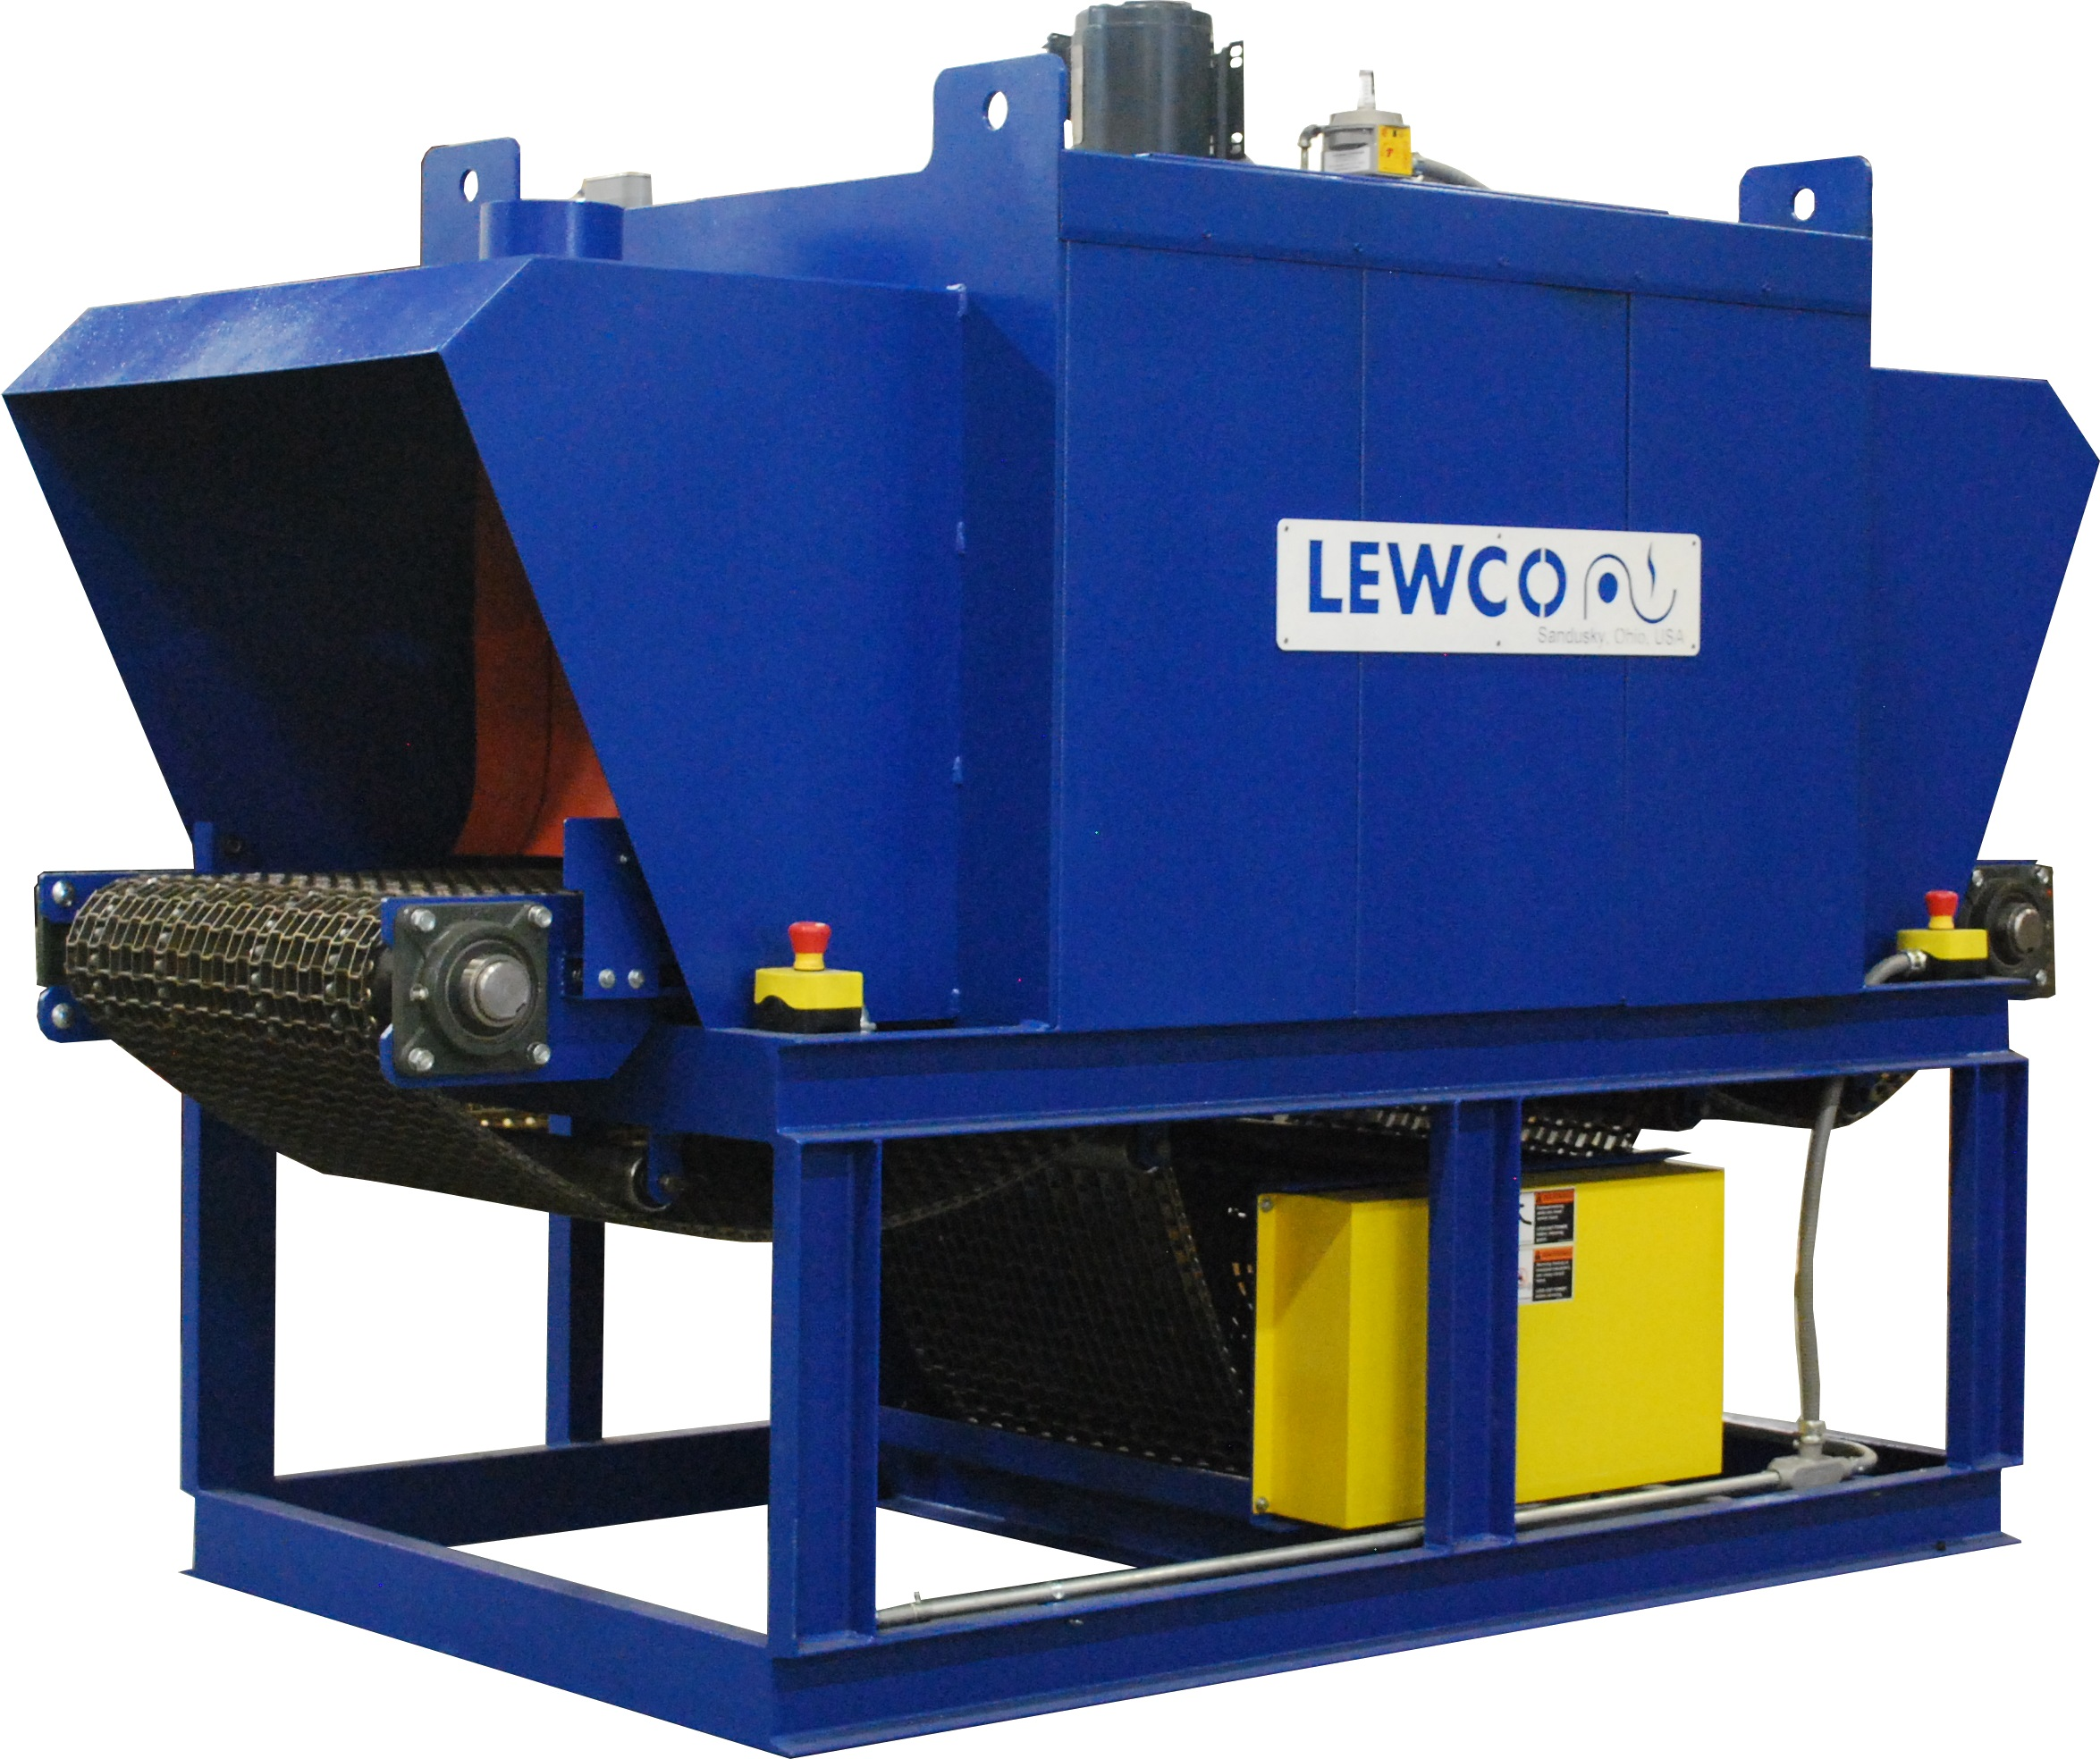 LEWCO Conveyor Oven